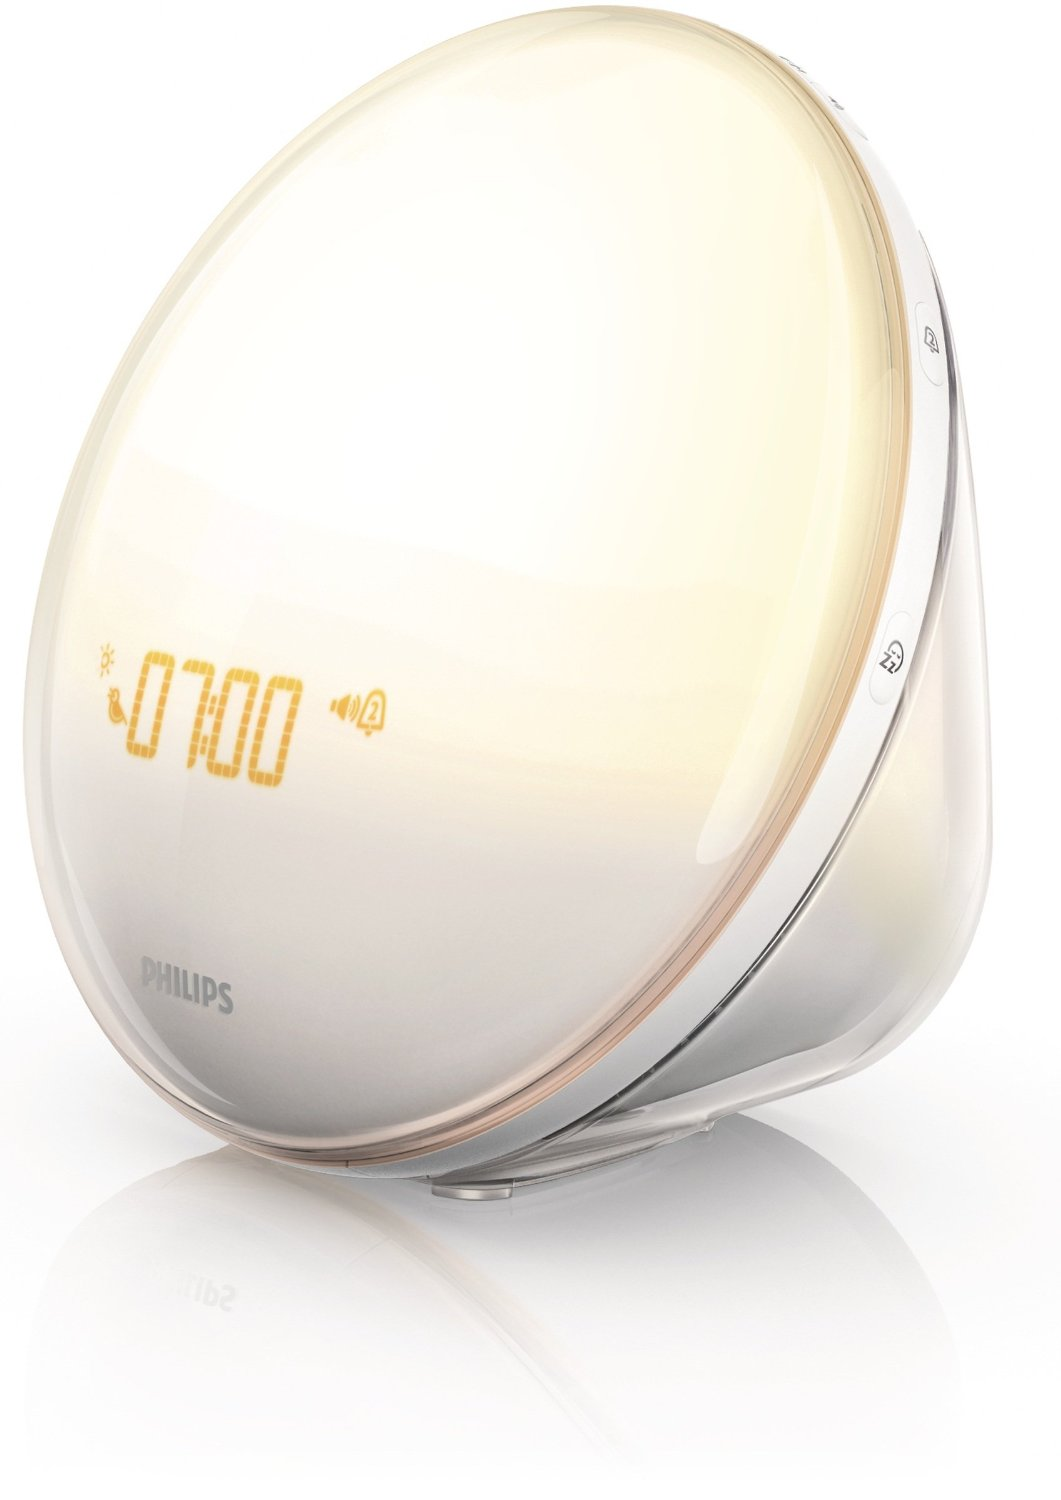 The Philips HF3520 Wake-Up Light With Colored Sunrise Simulation